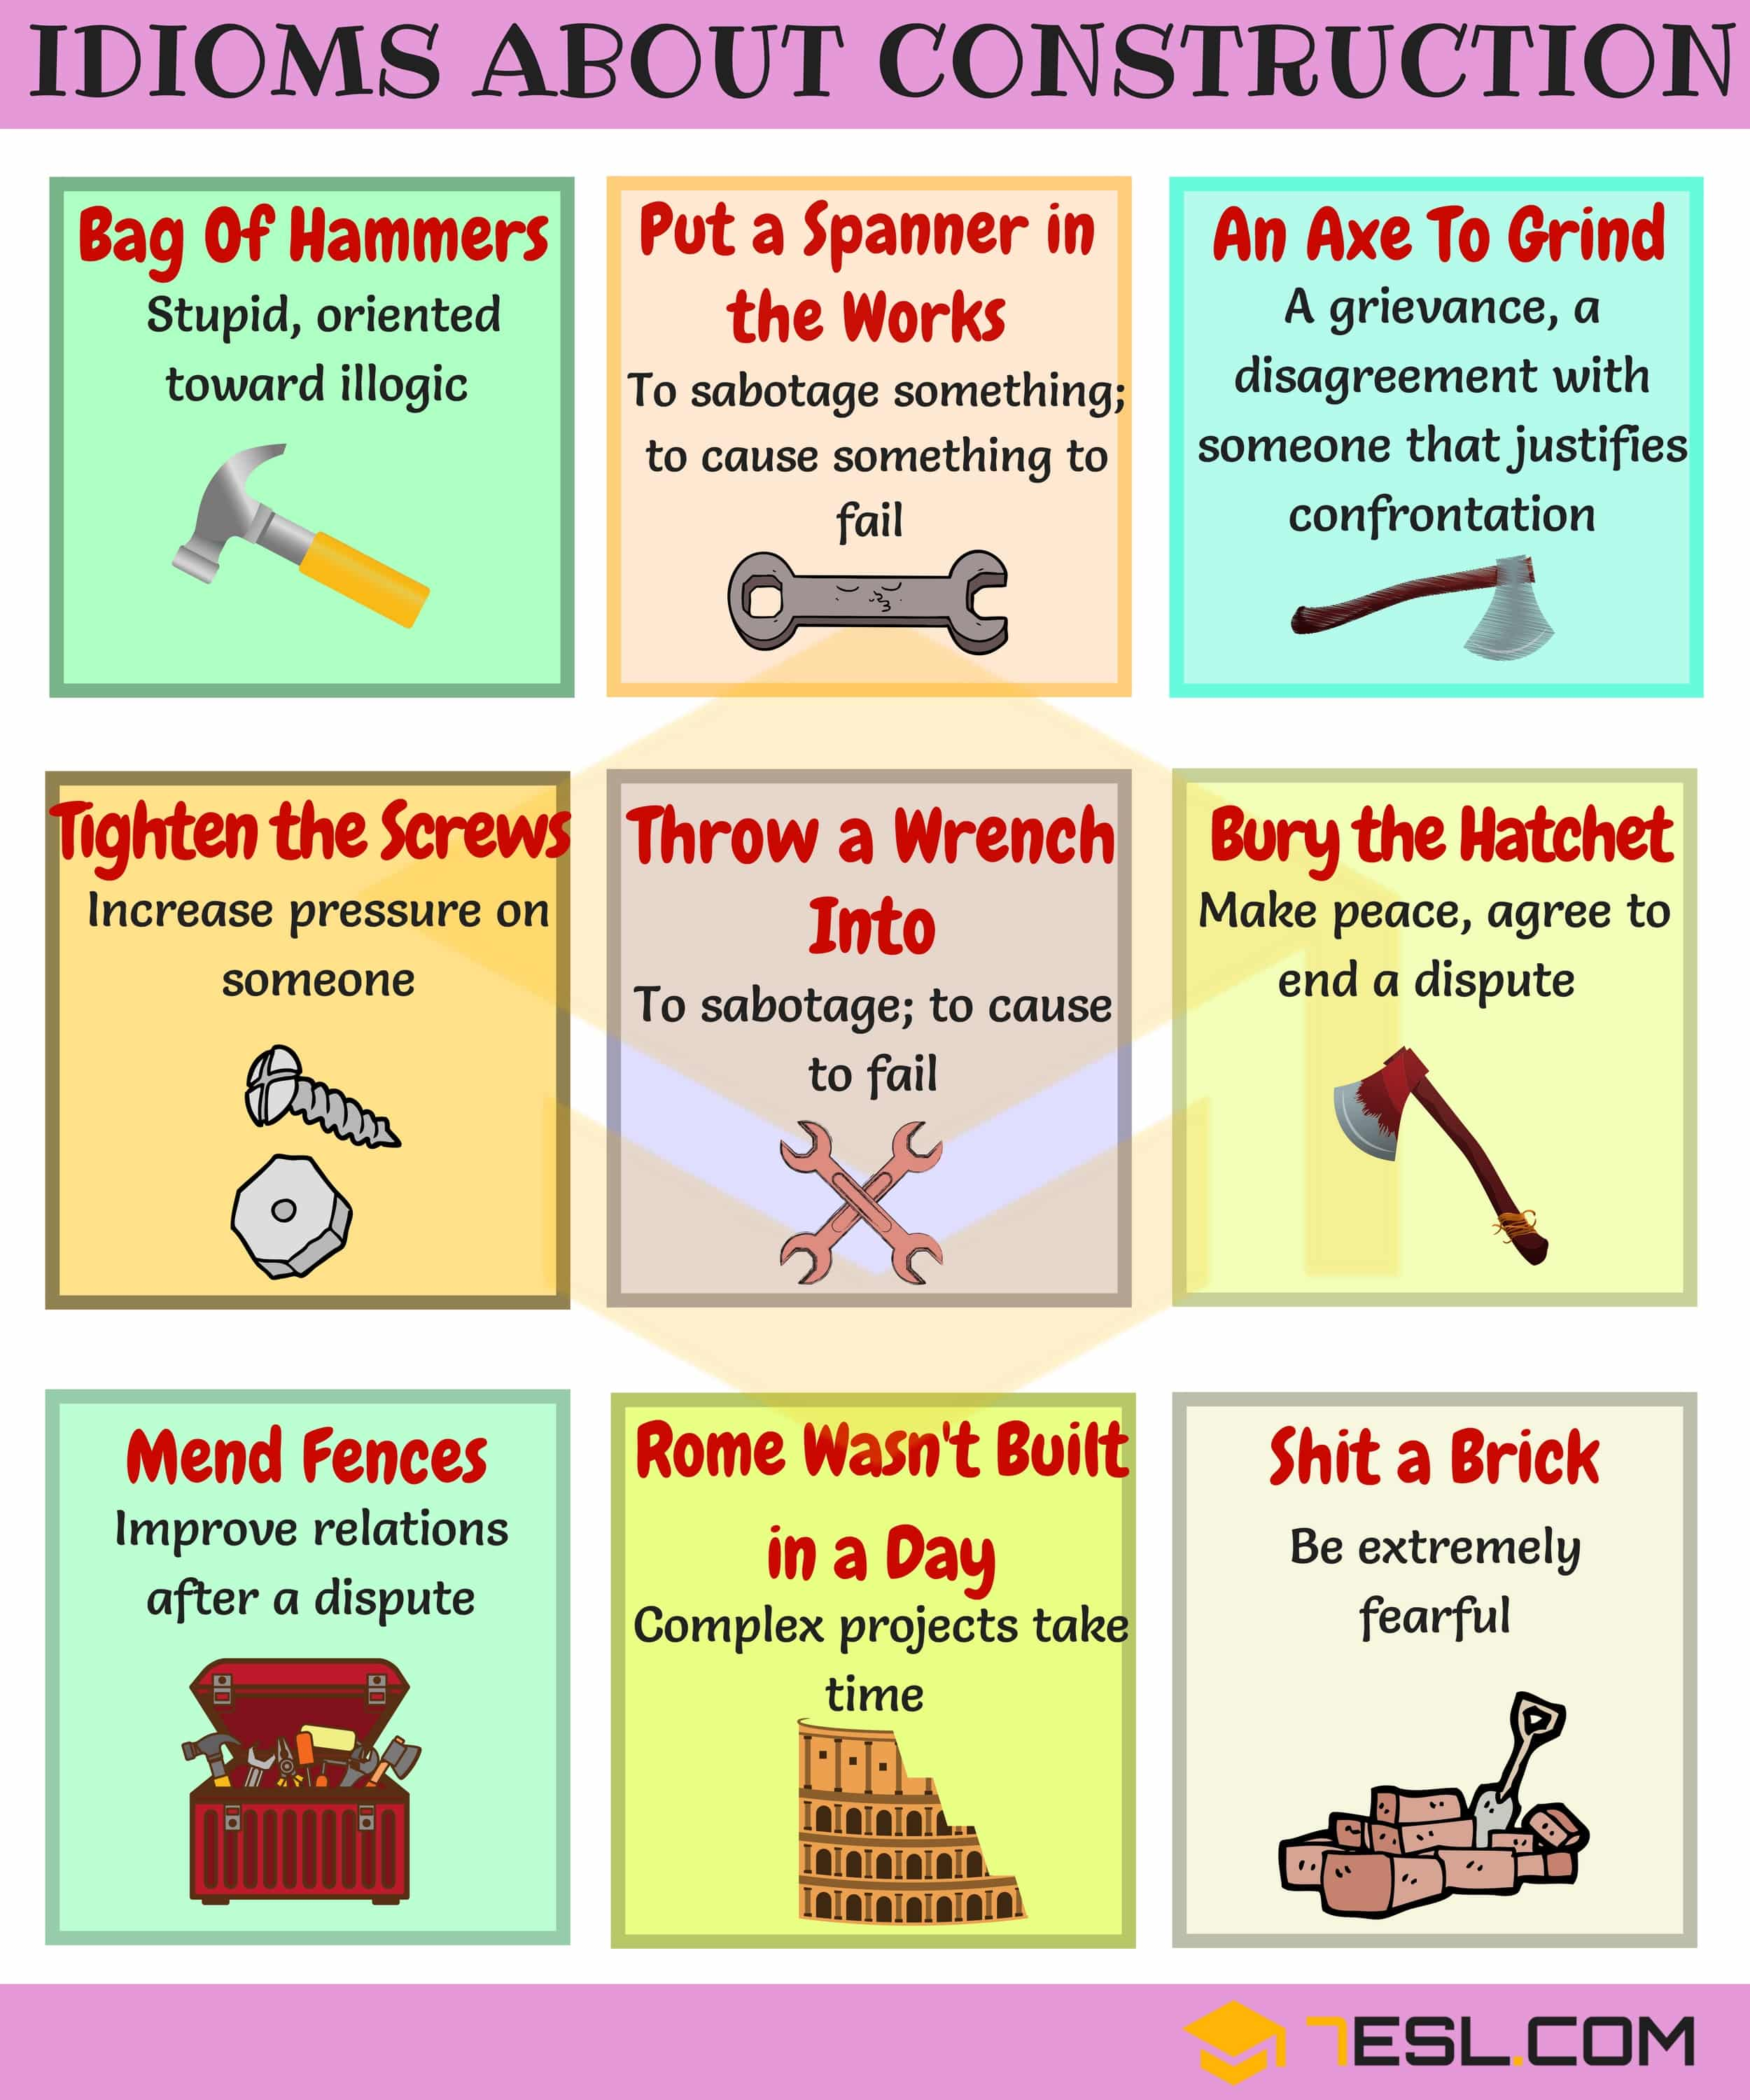 Construction Idioms